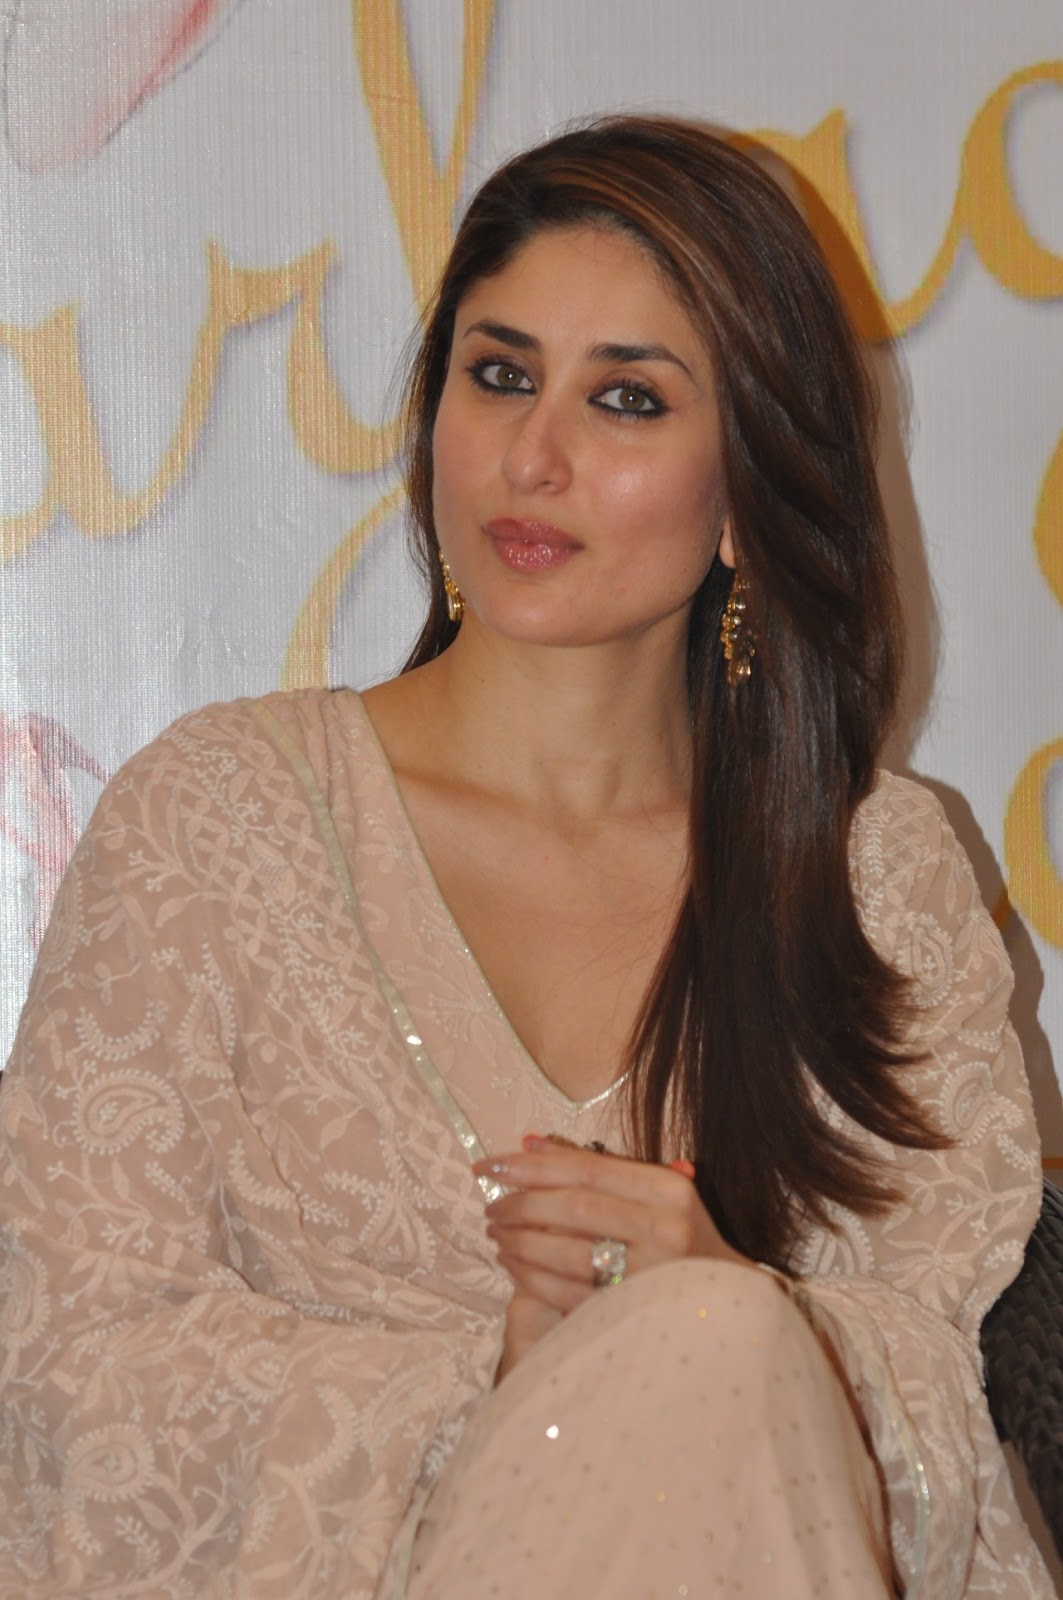 Gorgeous kareena pics from an event